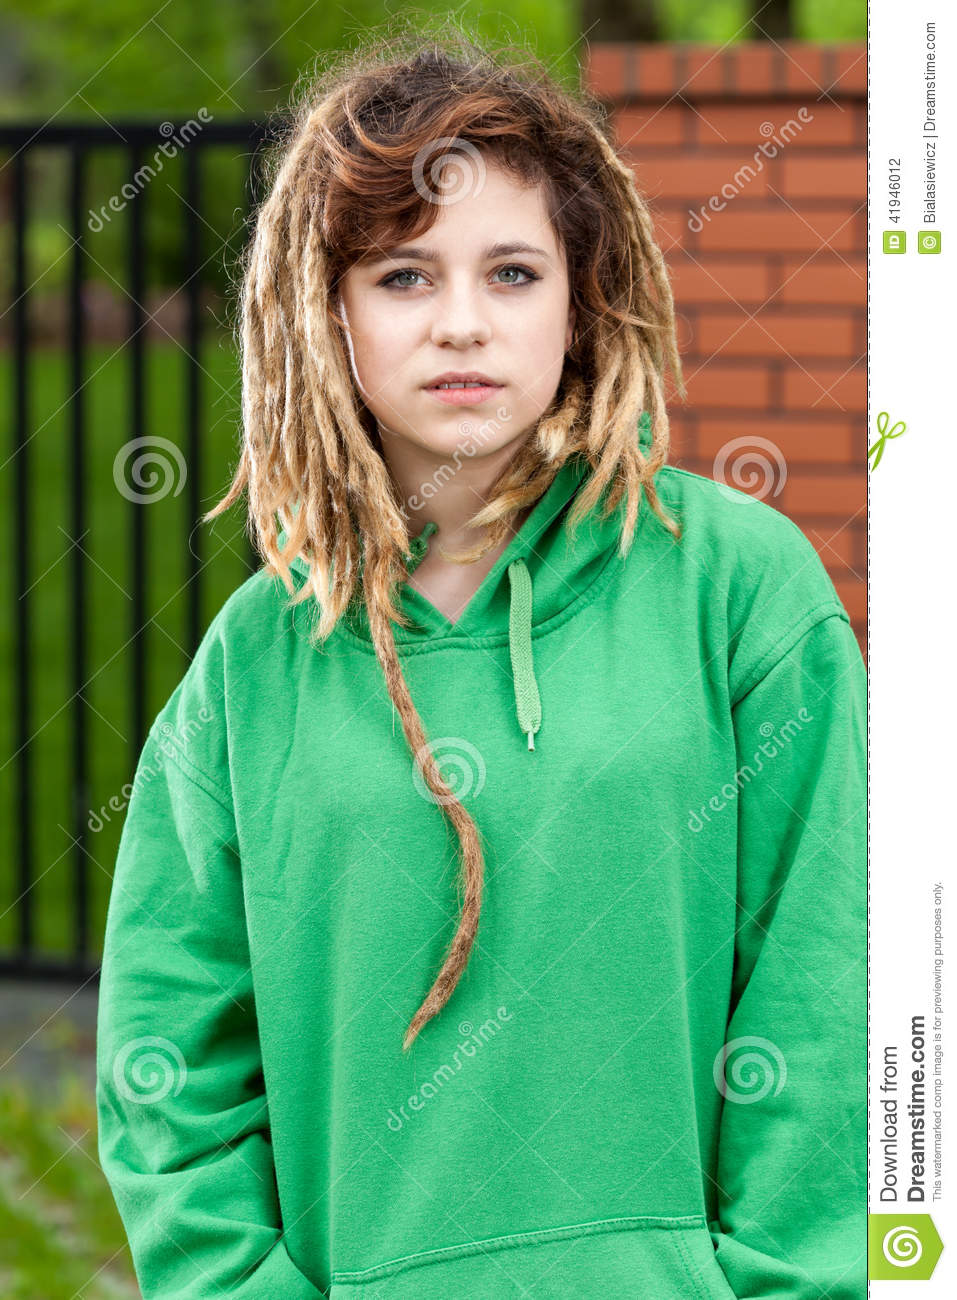 Rude Rasta Girl Stock Photo Image Of Dreads Hairstyle